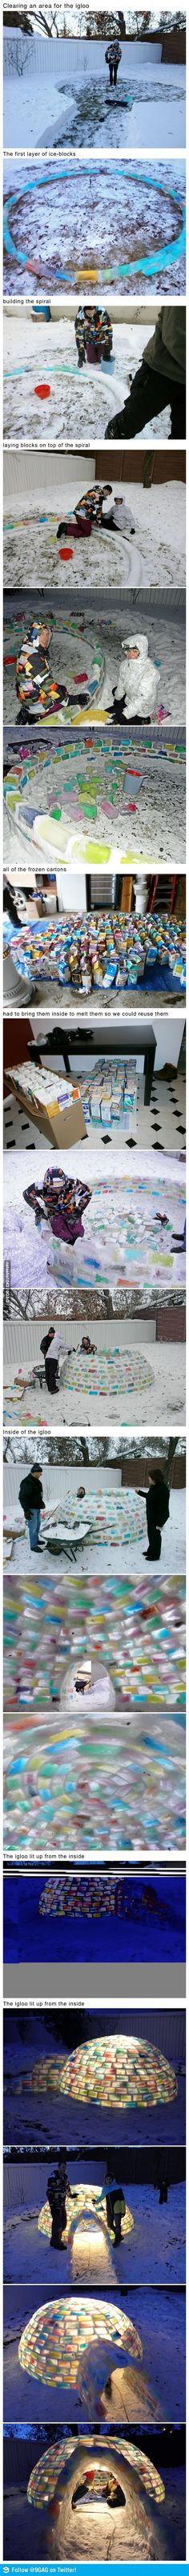 Wow!!!!! Awesome Igloo building